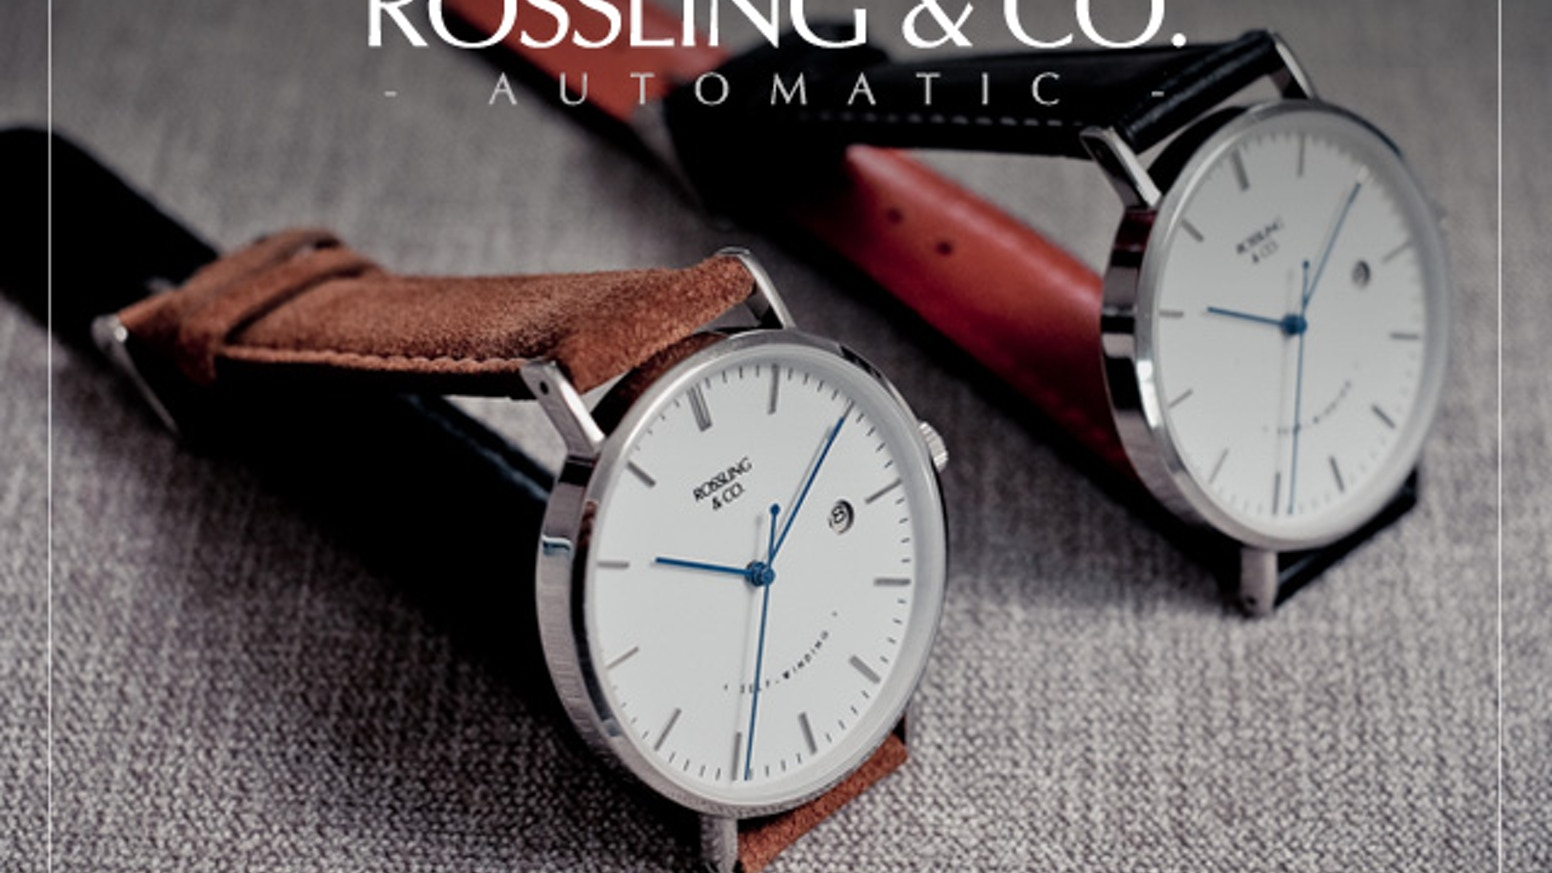 Heirloom quality, ultra-thin, automatic watches. Versatile, fashionable and affordable. With a unique suede strap.